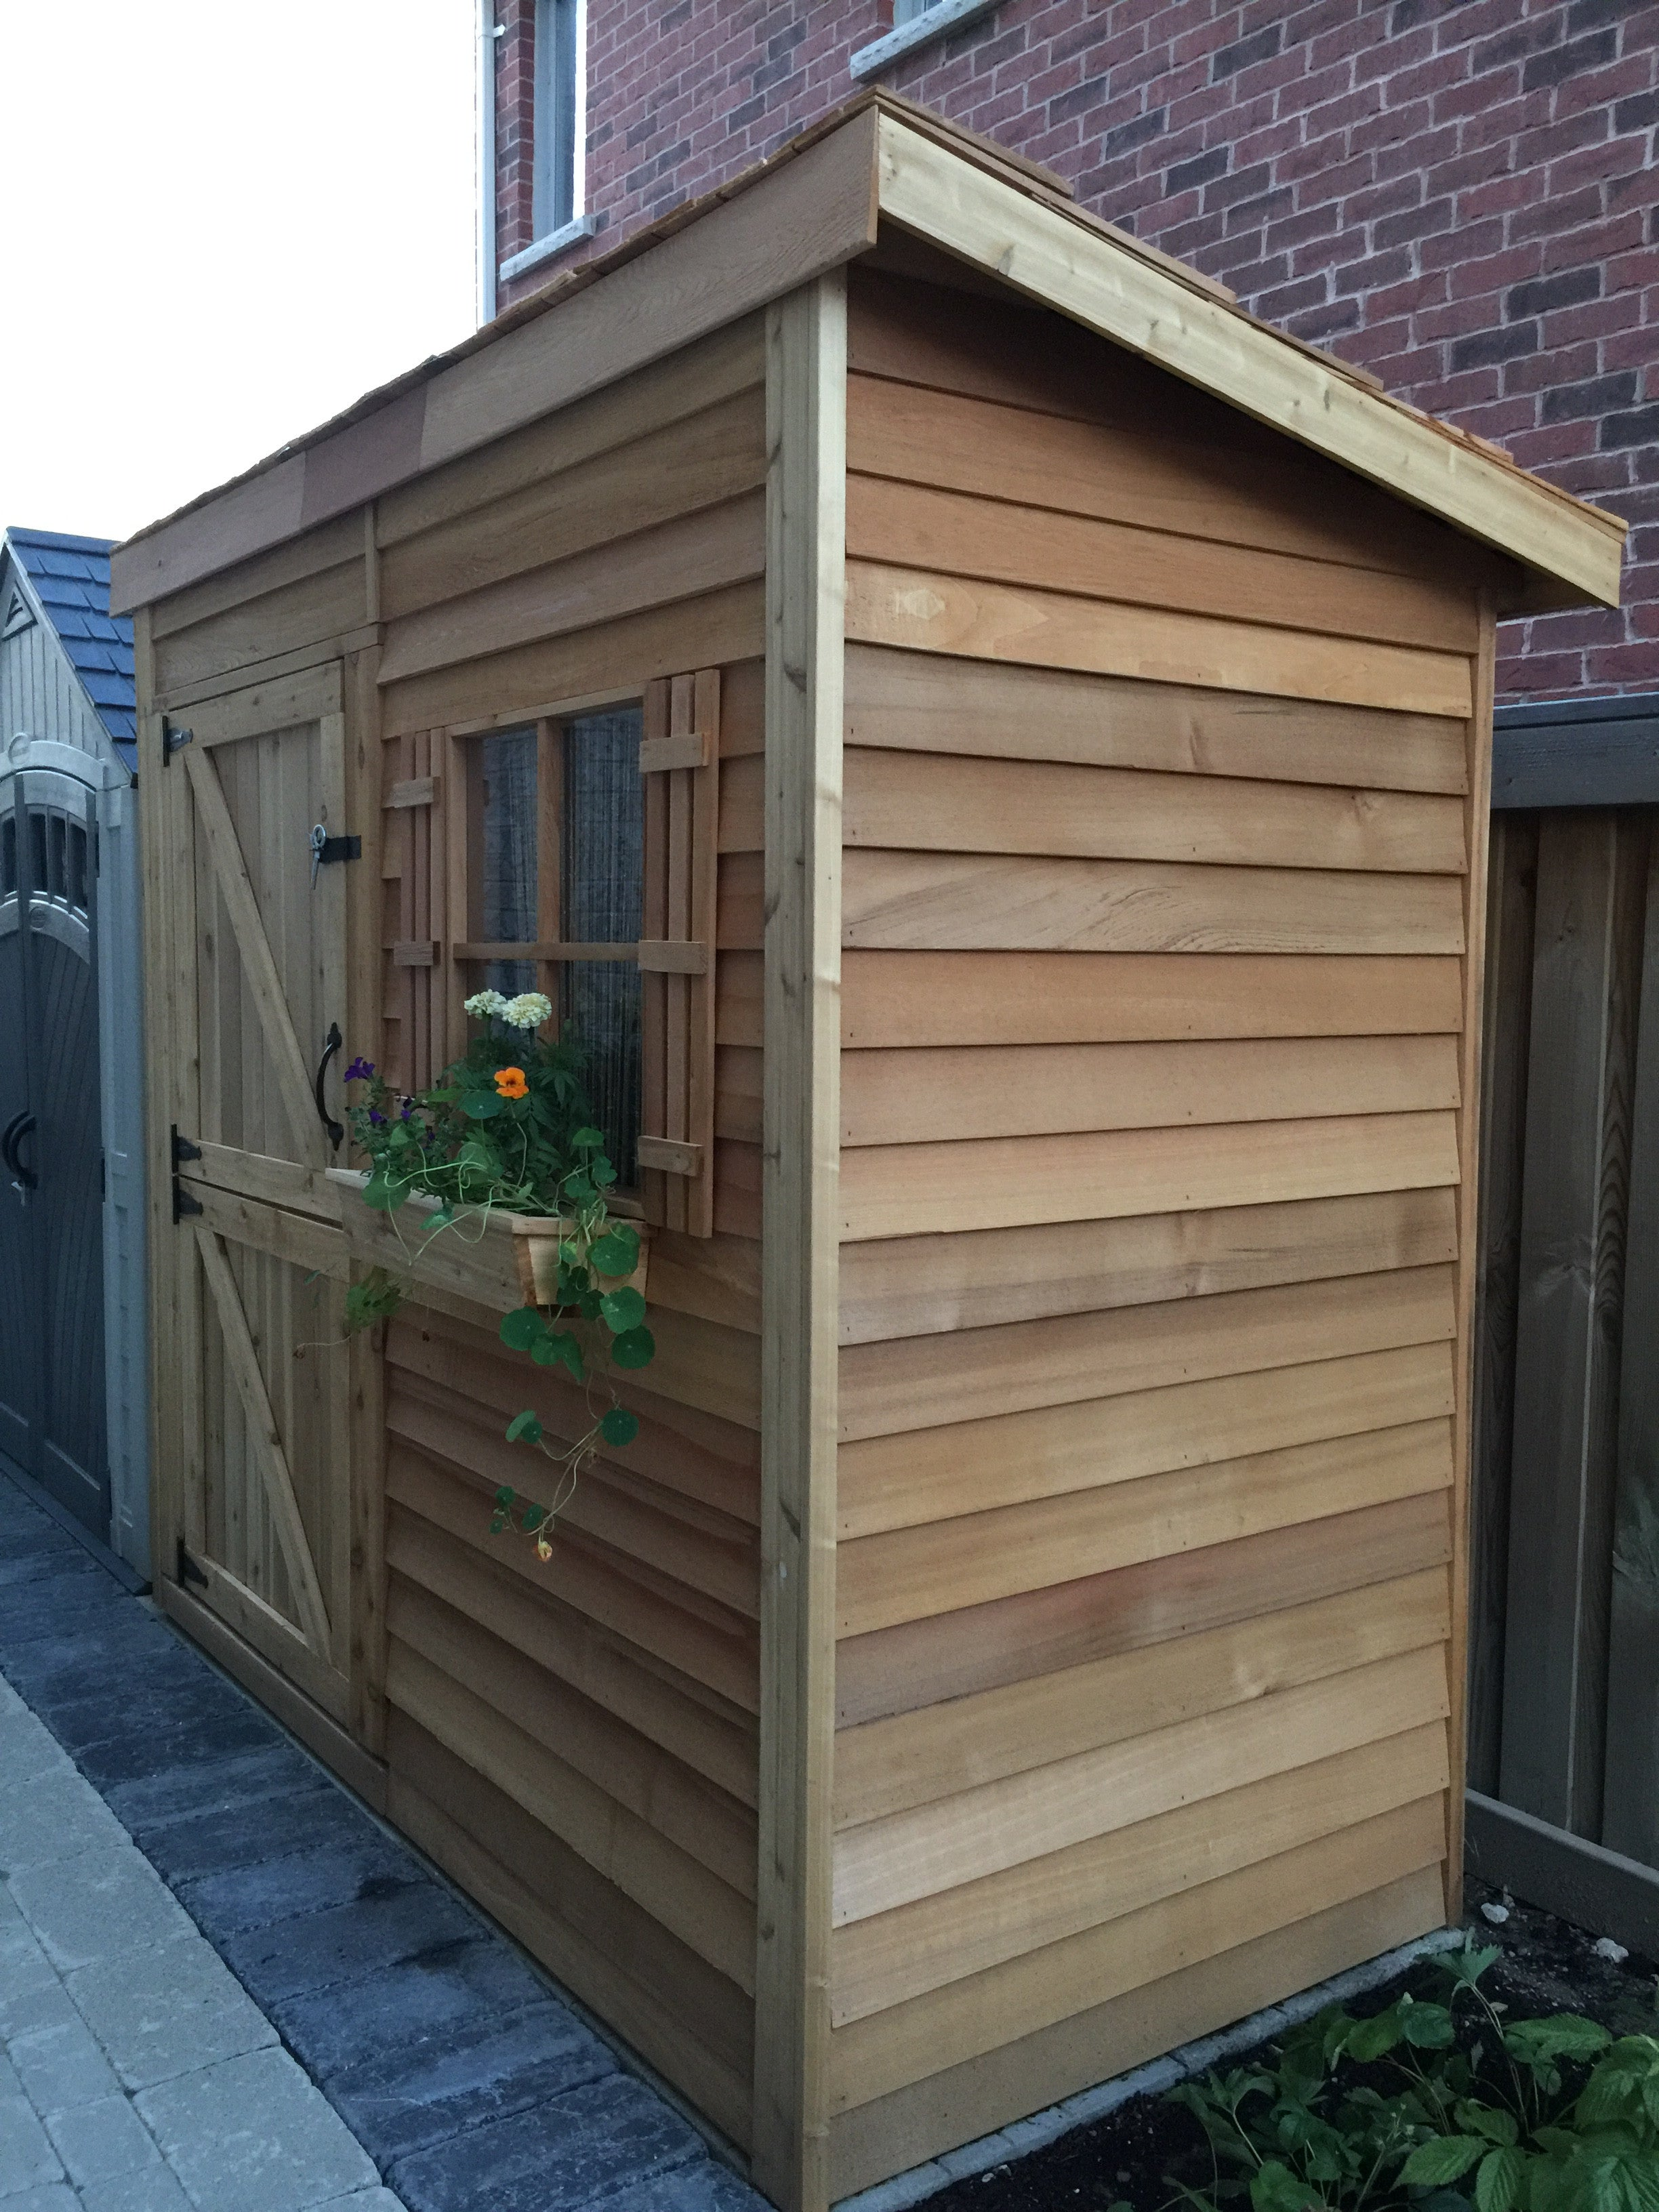 s storage x vertical for more ft tool sheds garden outdoor ca structures shed sale wood lowe canada